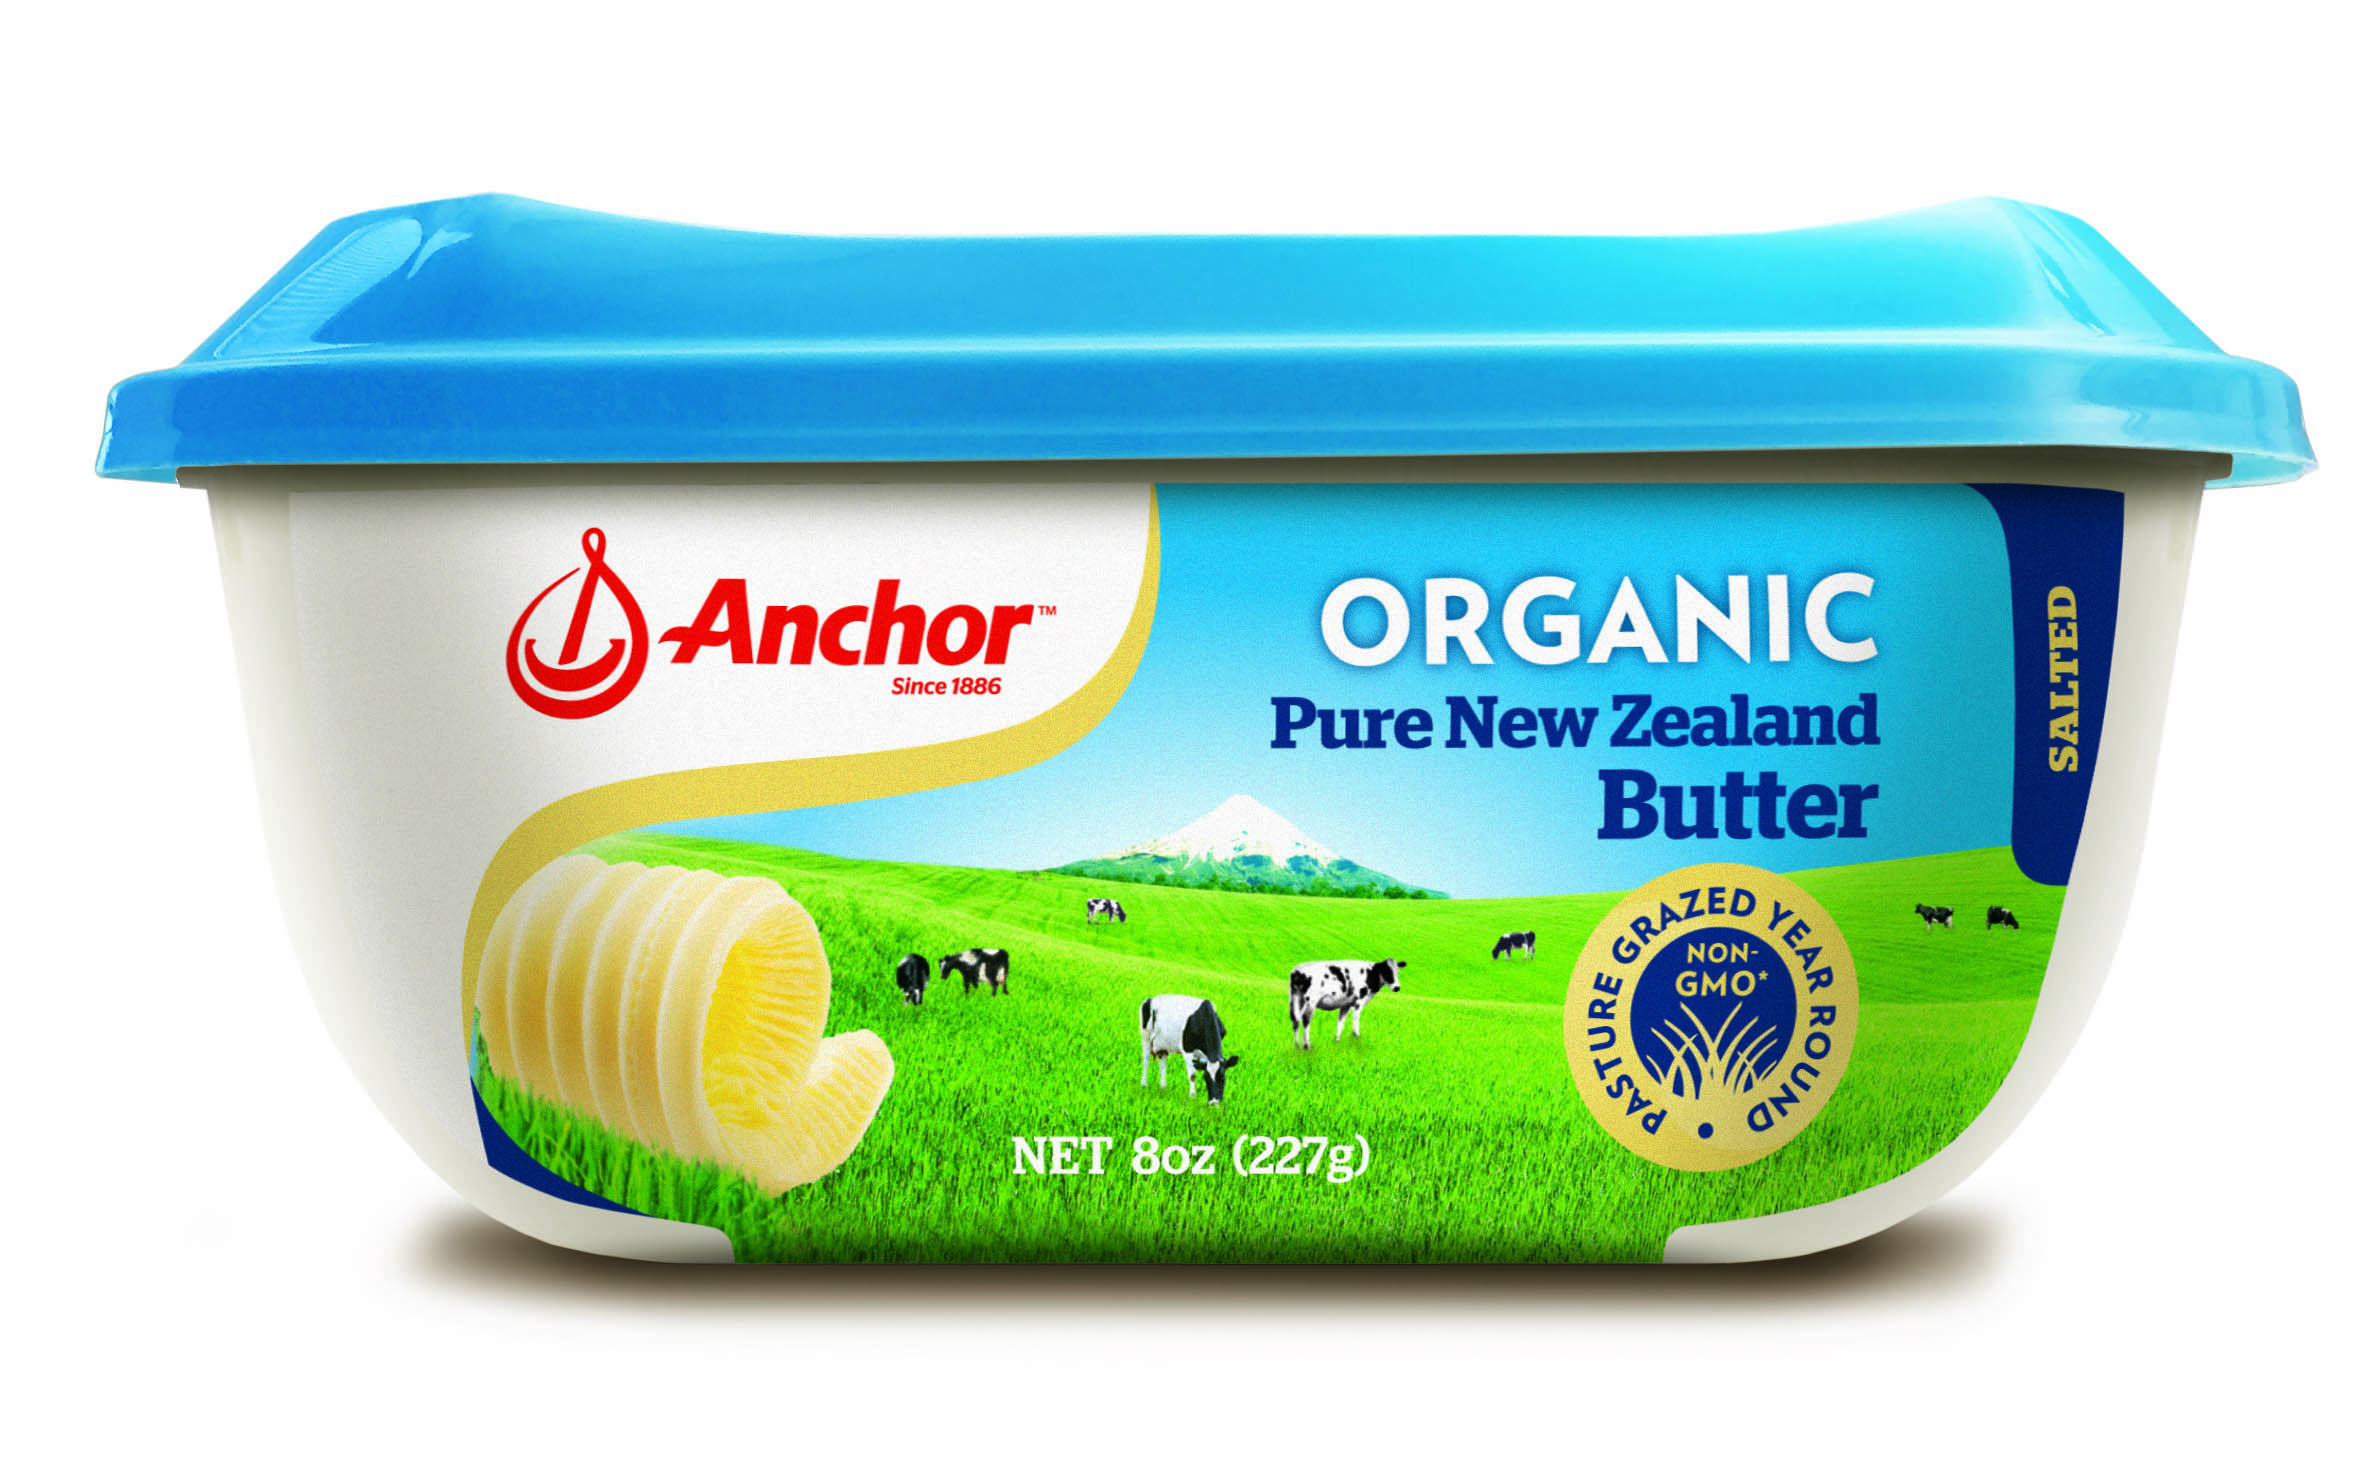 Anchor_Organic Butter 8oz Tub USA 3D_1 Blue